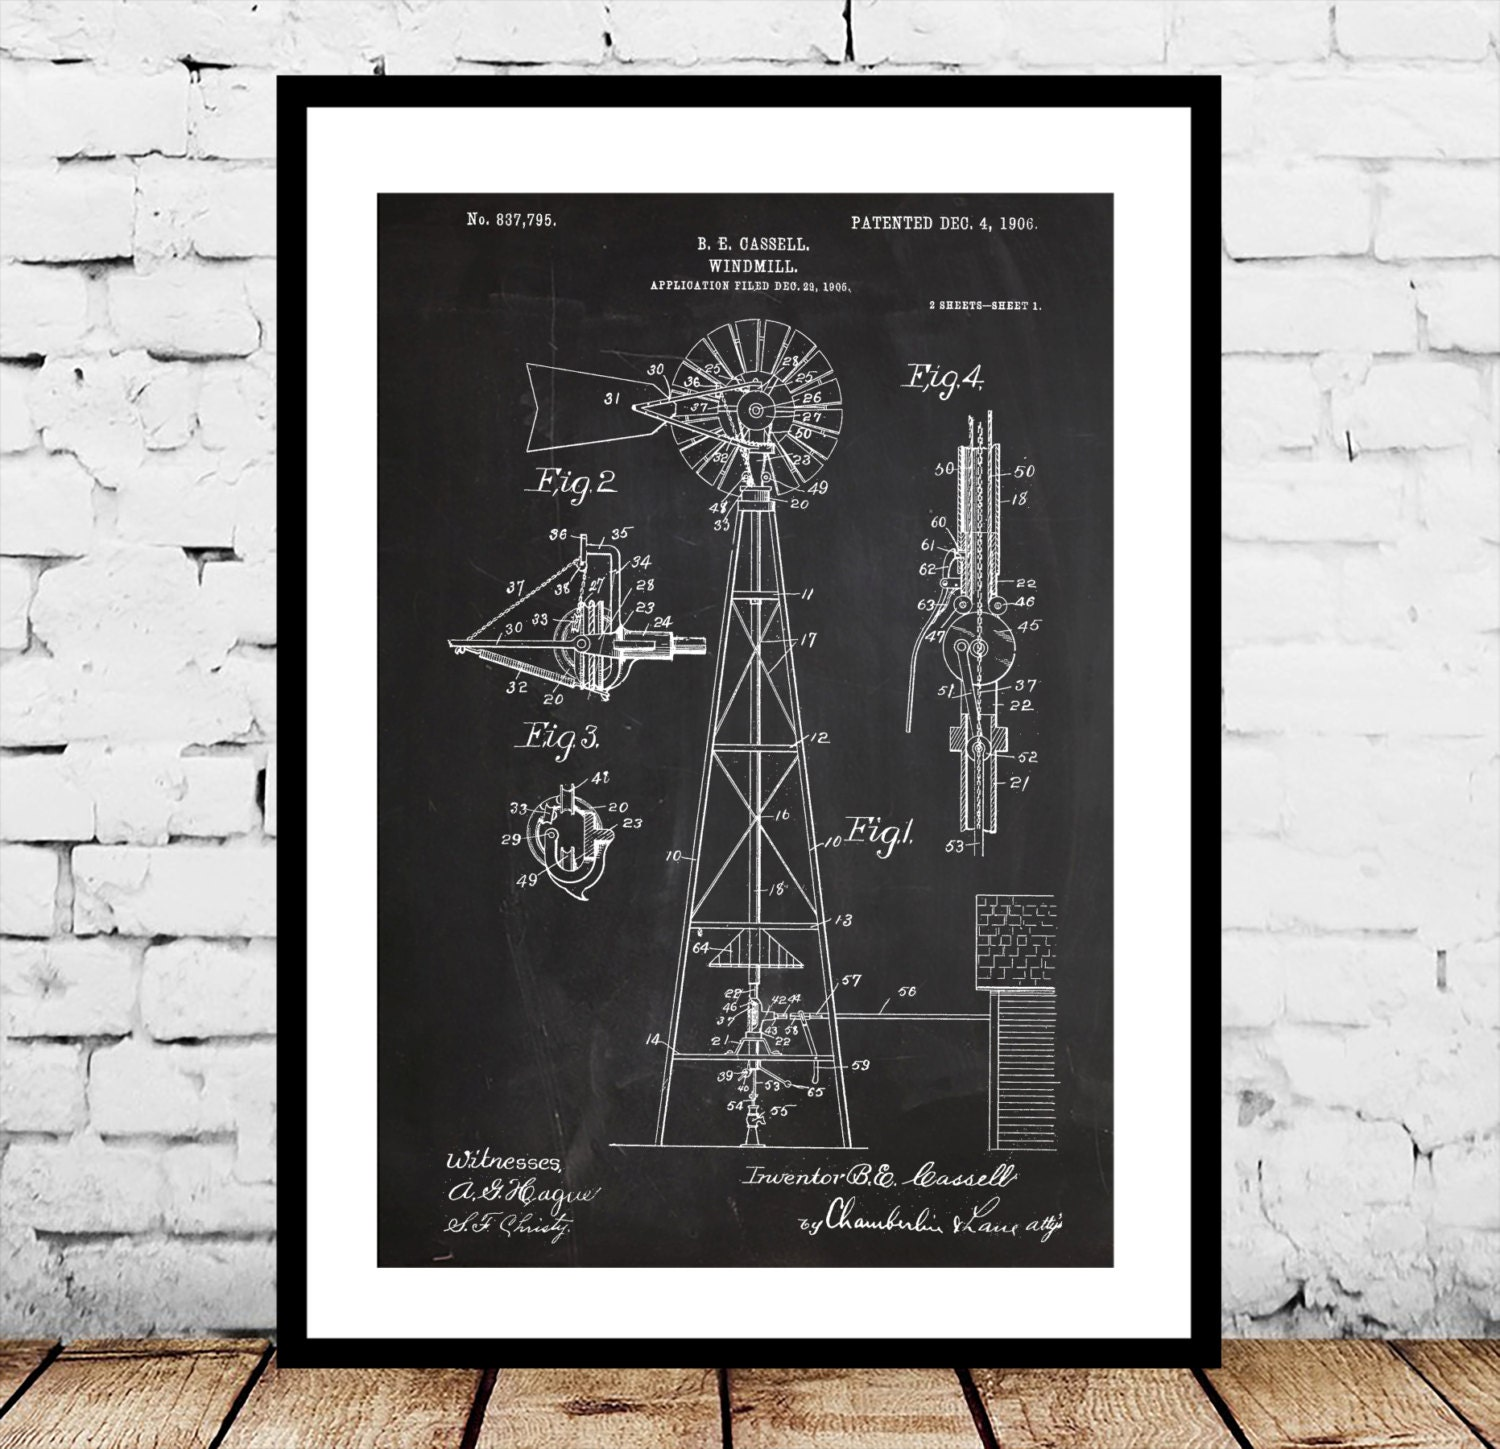 Windmill patent windmill poster windmill blueprint windmill print windmill patent windmill poster windmill blueprint windmill print windmill art windmill decor malvernweather